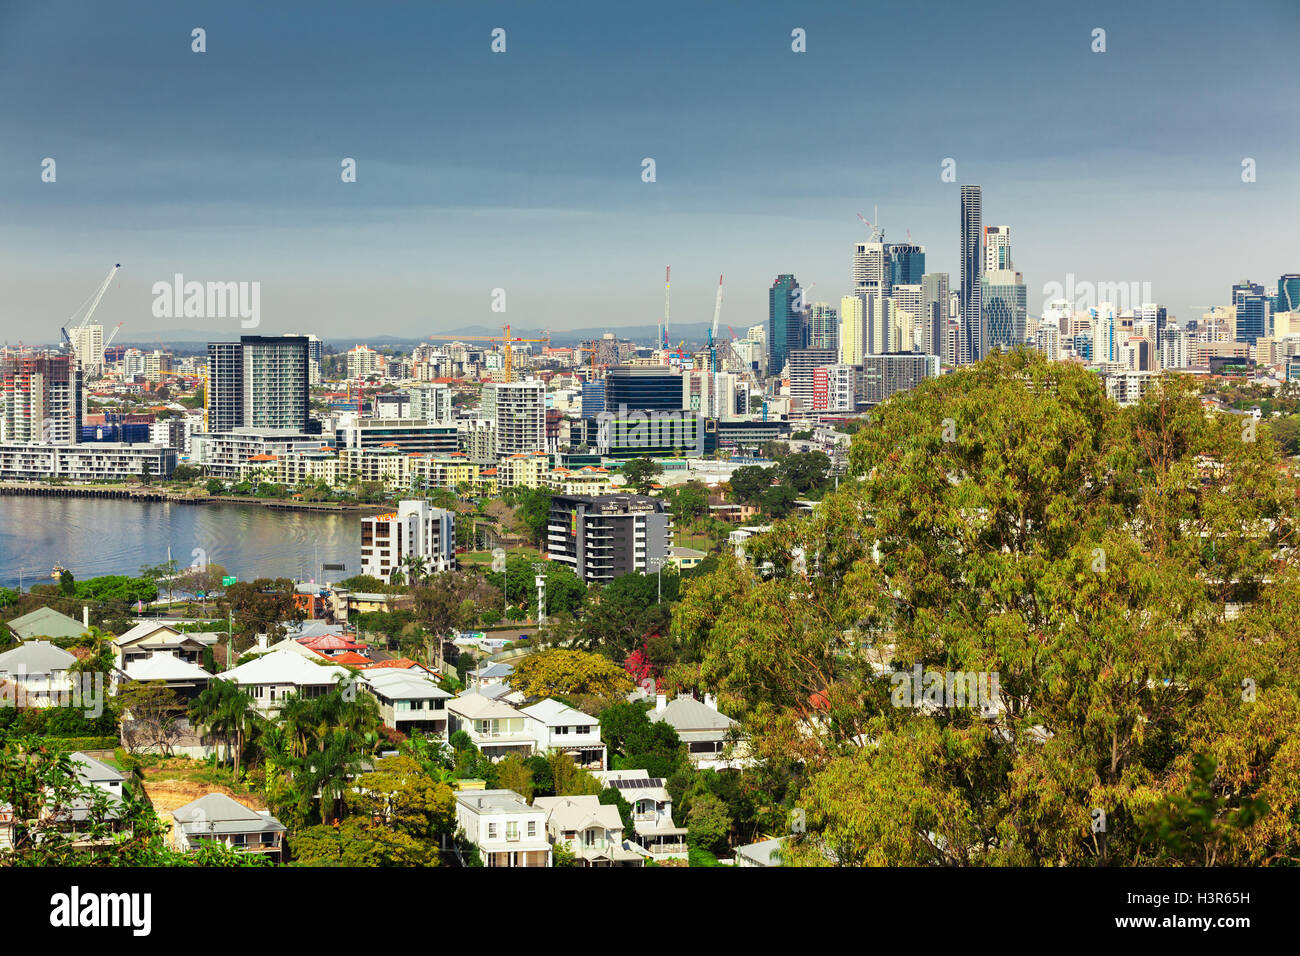 BRISBANE, AUS - AUG 10 2016: Brisbane Skyline as seen from north side. It is Australias third largest city, capital - Stock Image